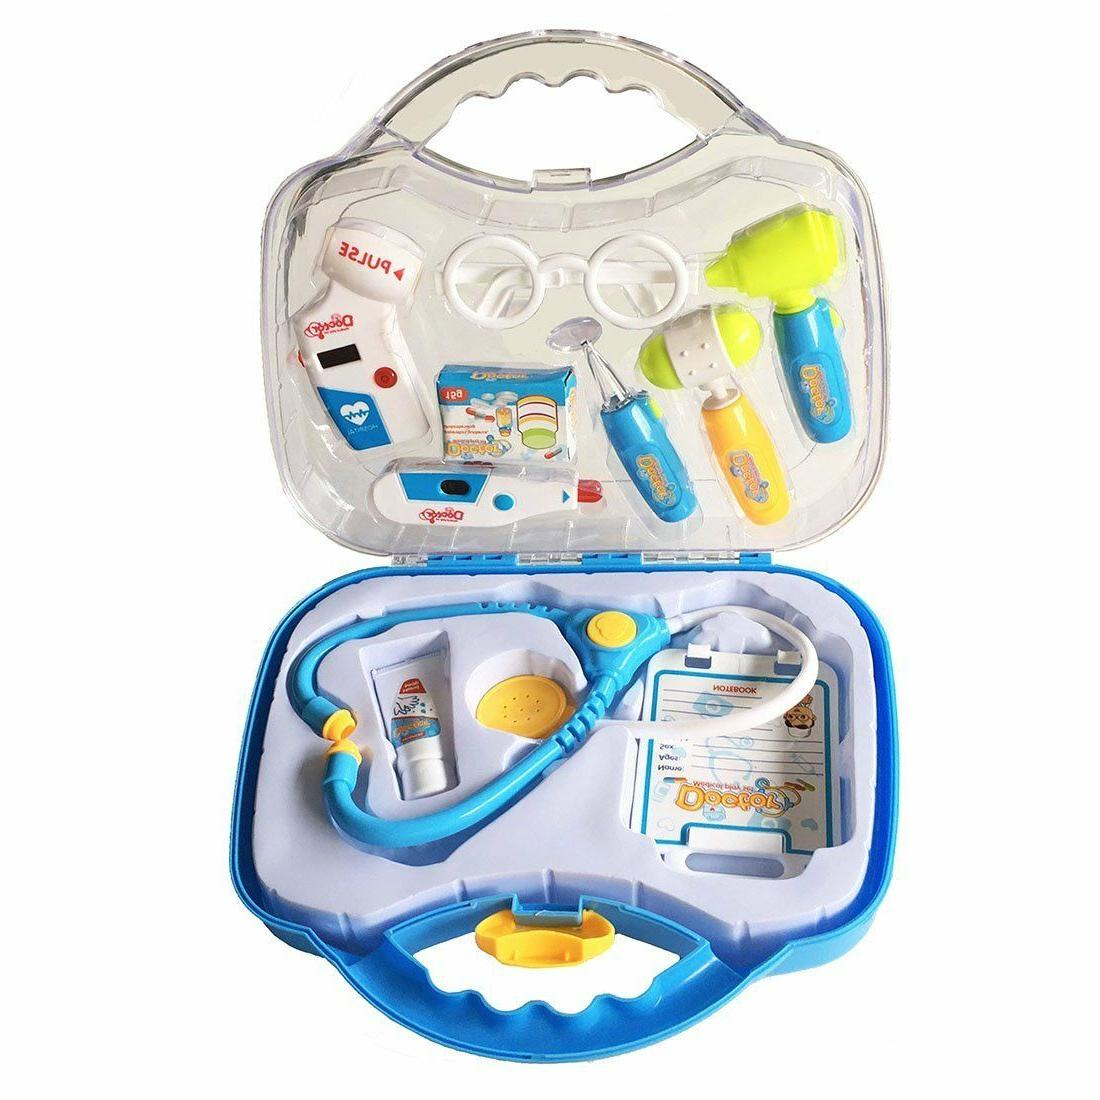 briefcase of medical toy sets of role